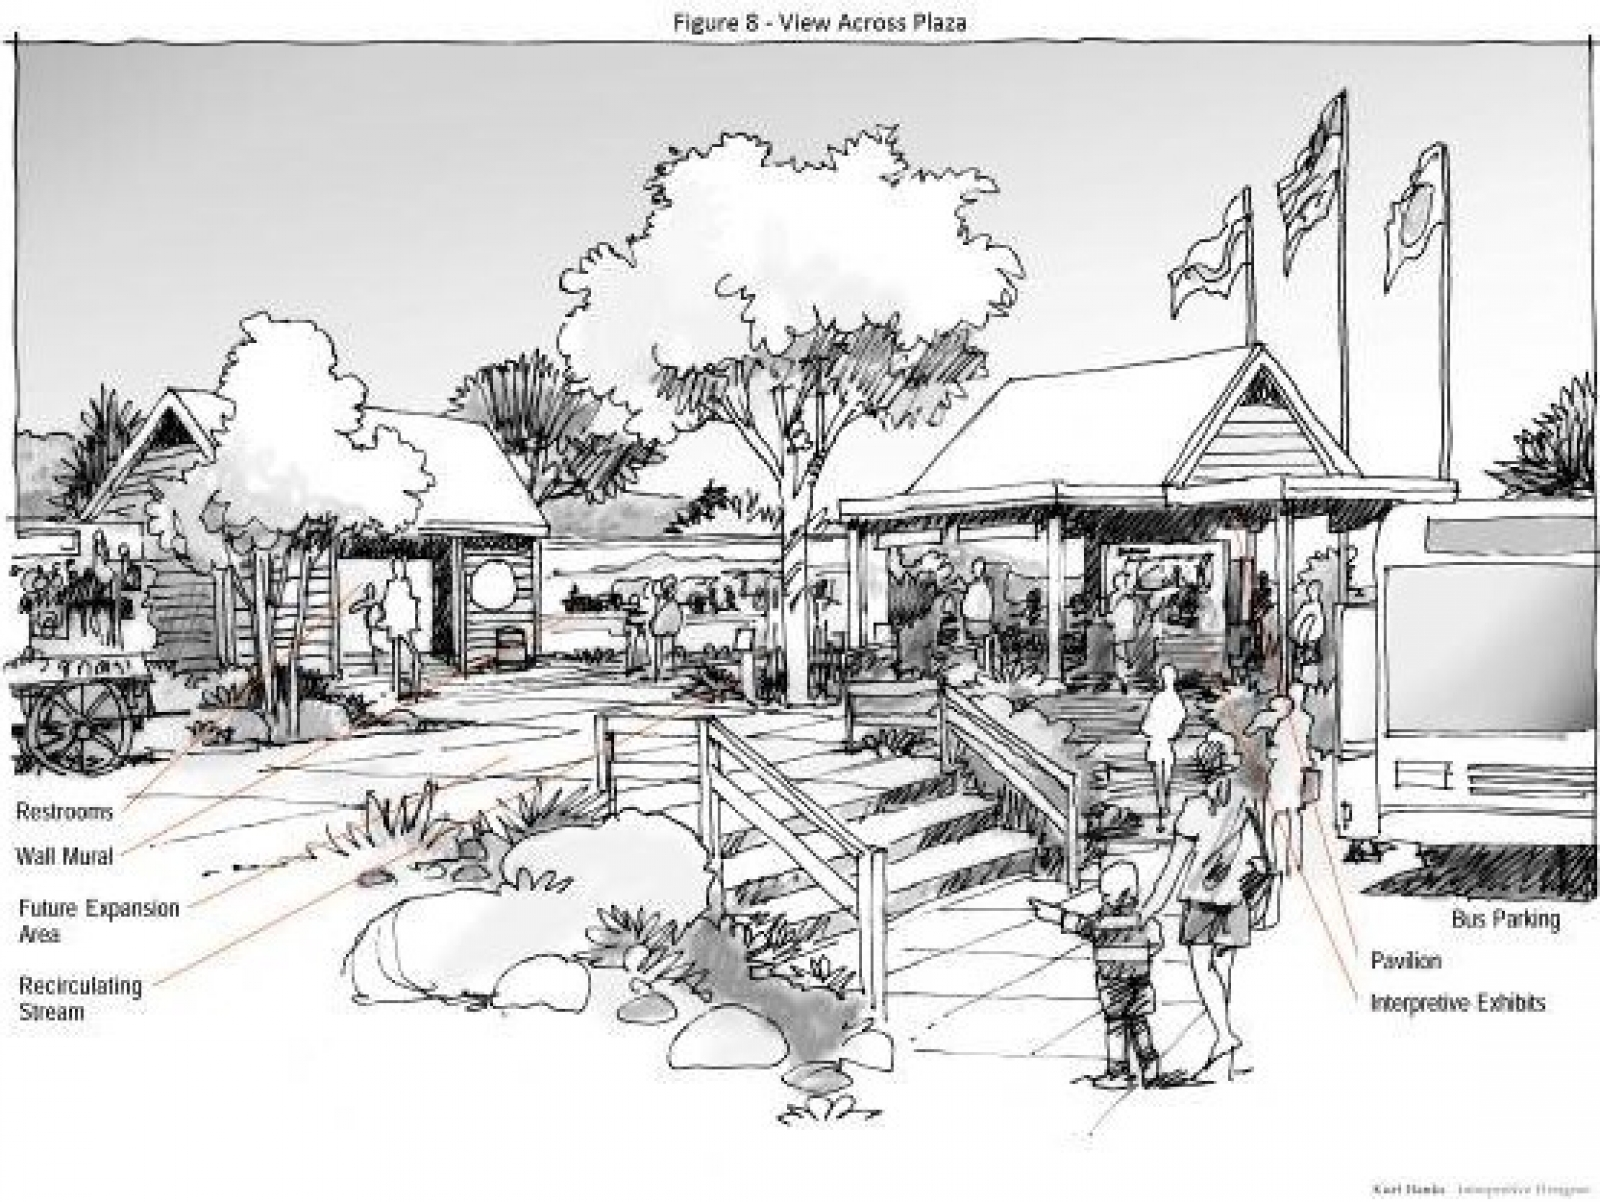 Escalante Heritage Center Master Plan and Feasibility Study and Phase One Design